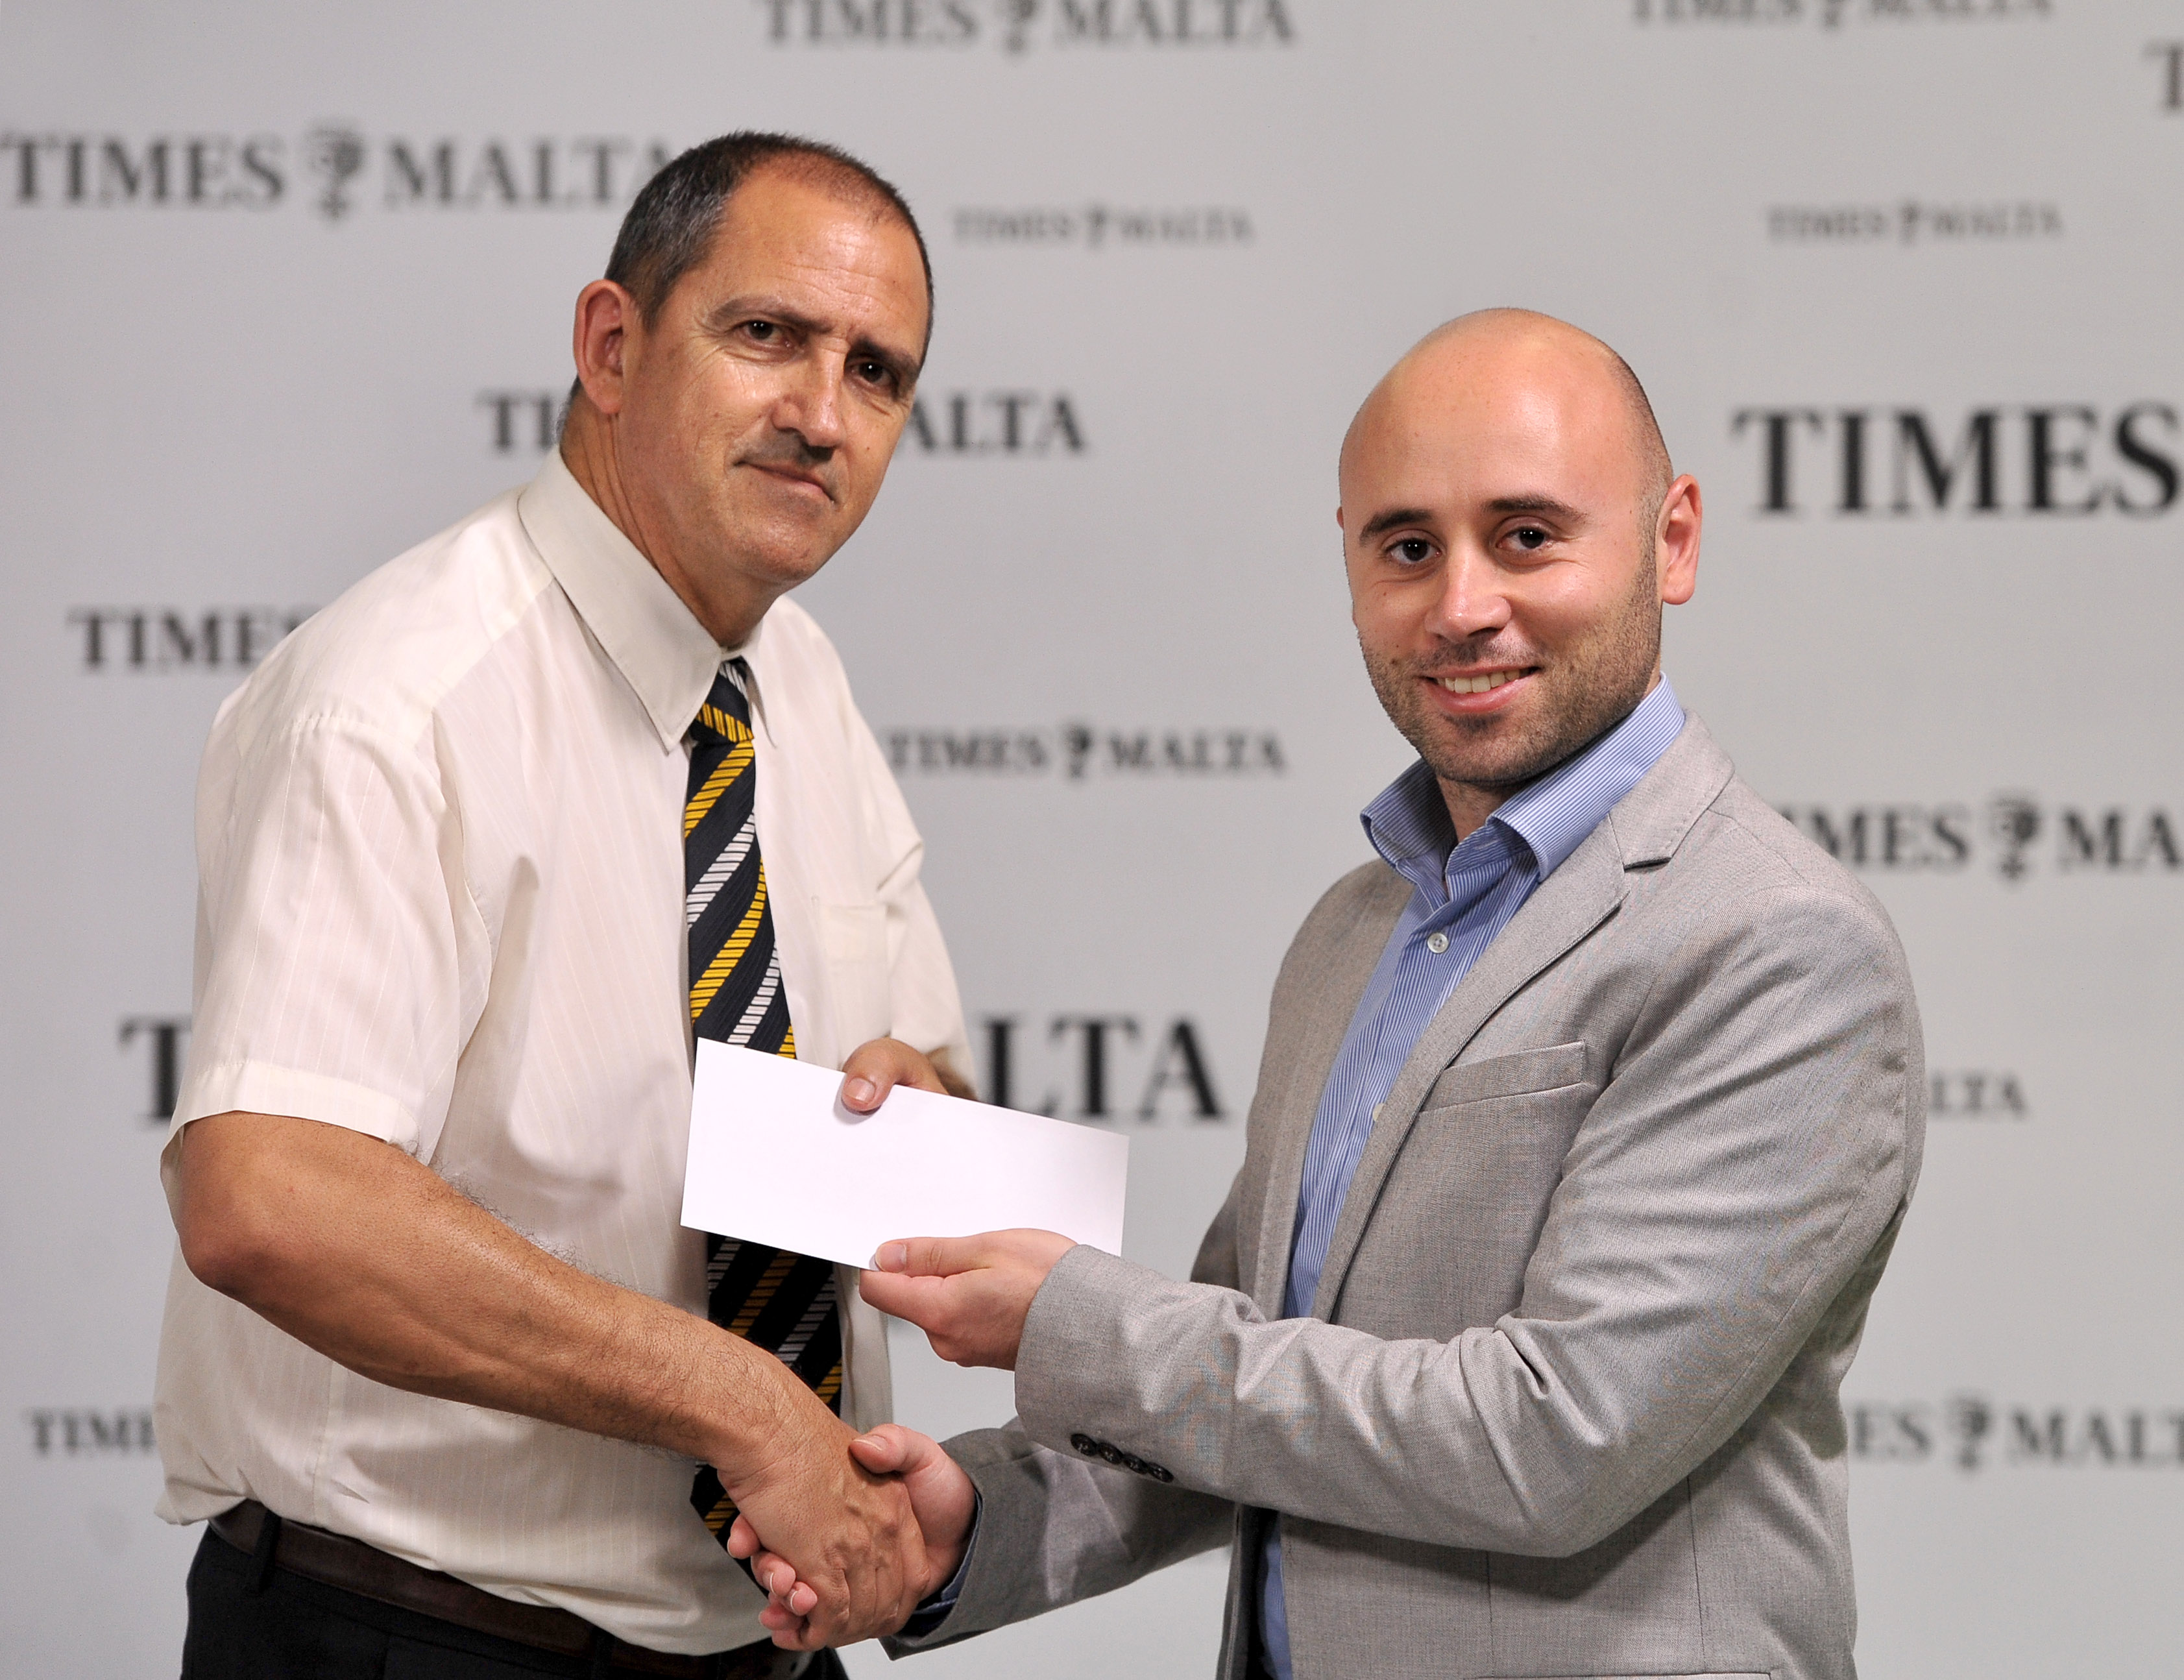 Kenneth Abela, a winner of the Word Game competition with Times of Malta